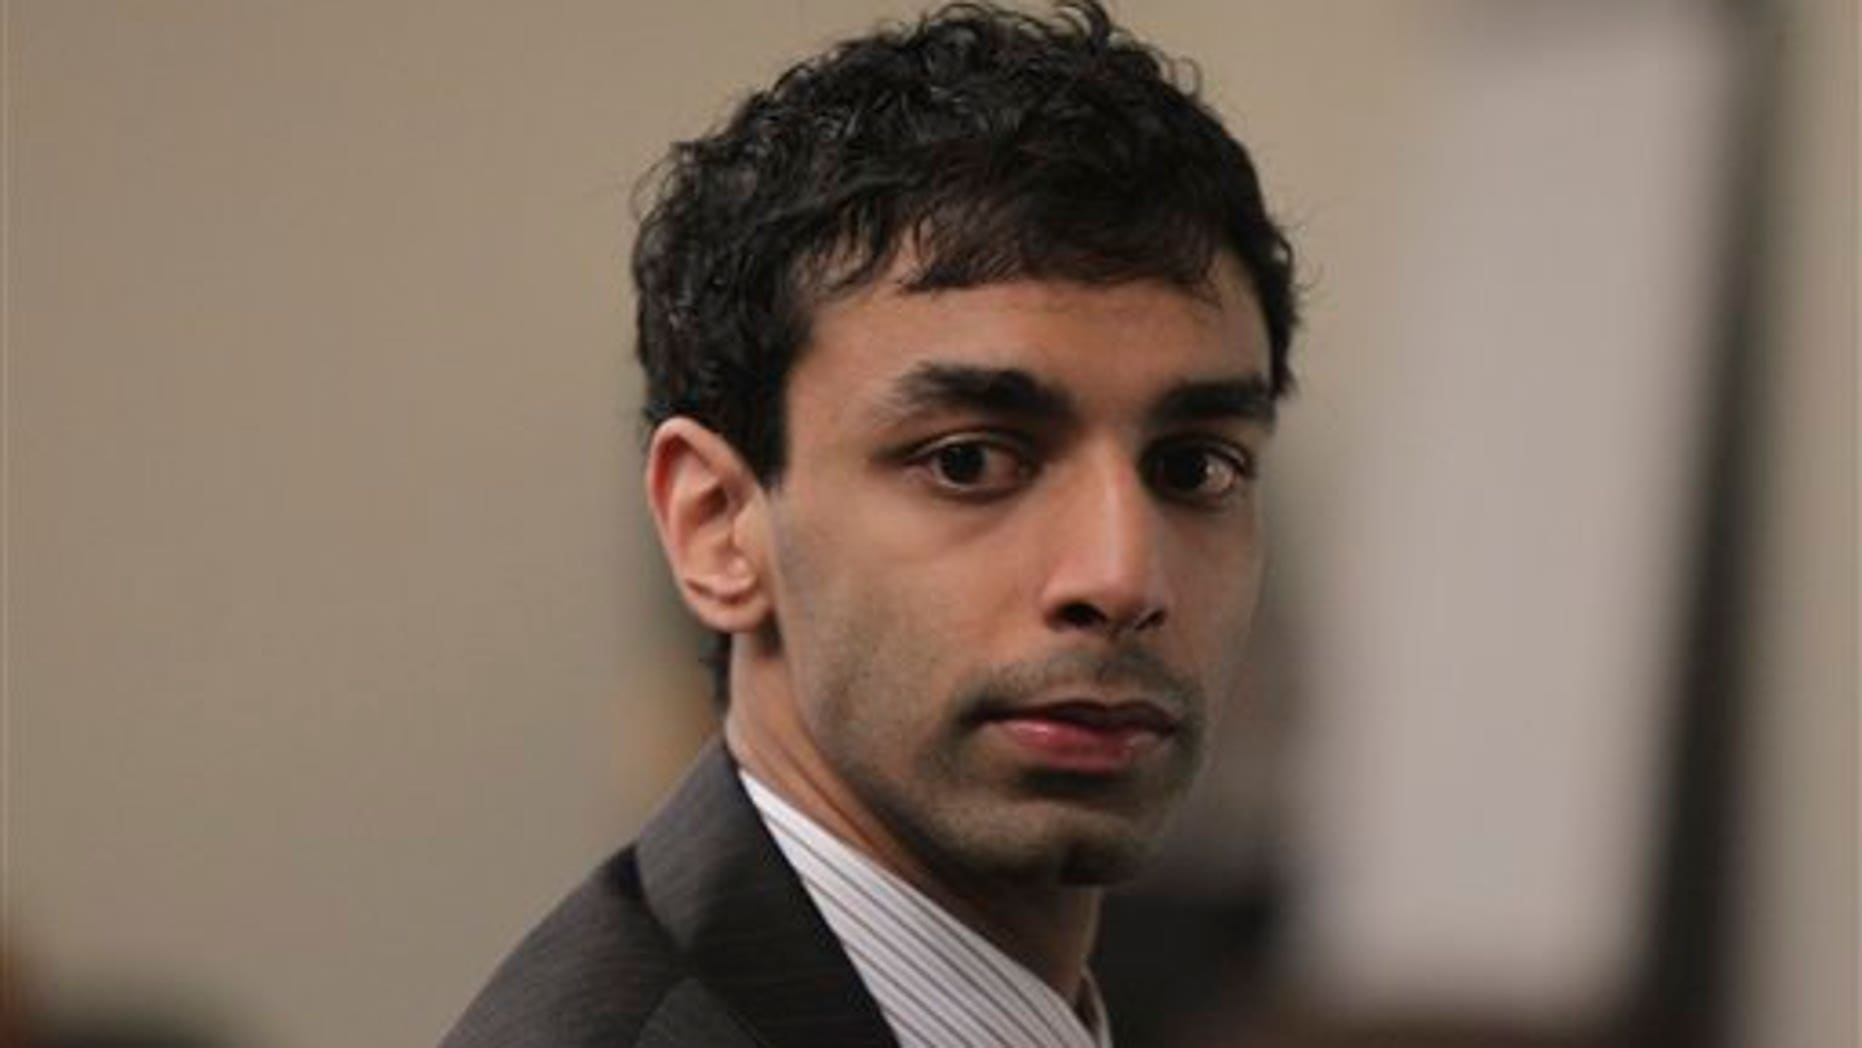 Feb. 28: Dharun Ravi listens to testimony during his trial at the Middlesex County Courthouse in New Brunswick, N.J. Ravi is accused of using a webcam to spy on his roommate, Tyler Clementi, in an intimate encounter with another man. Days later Clementi committed suicide.